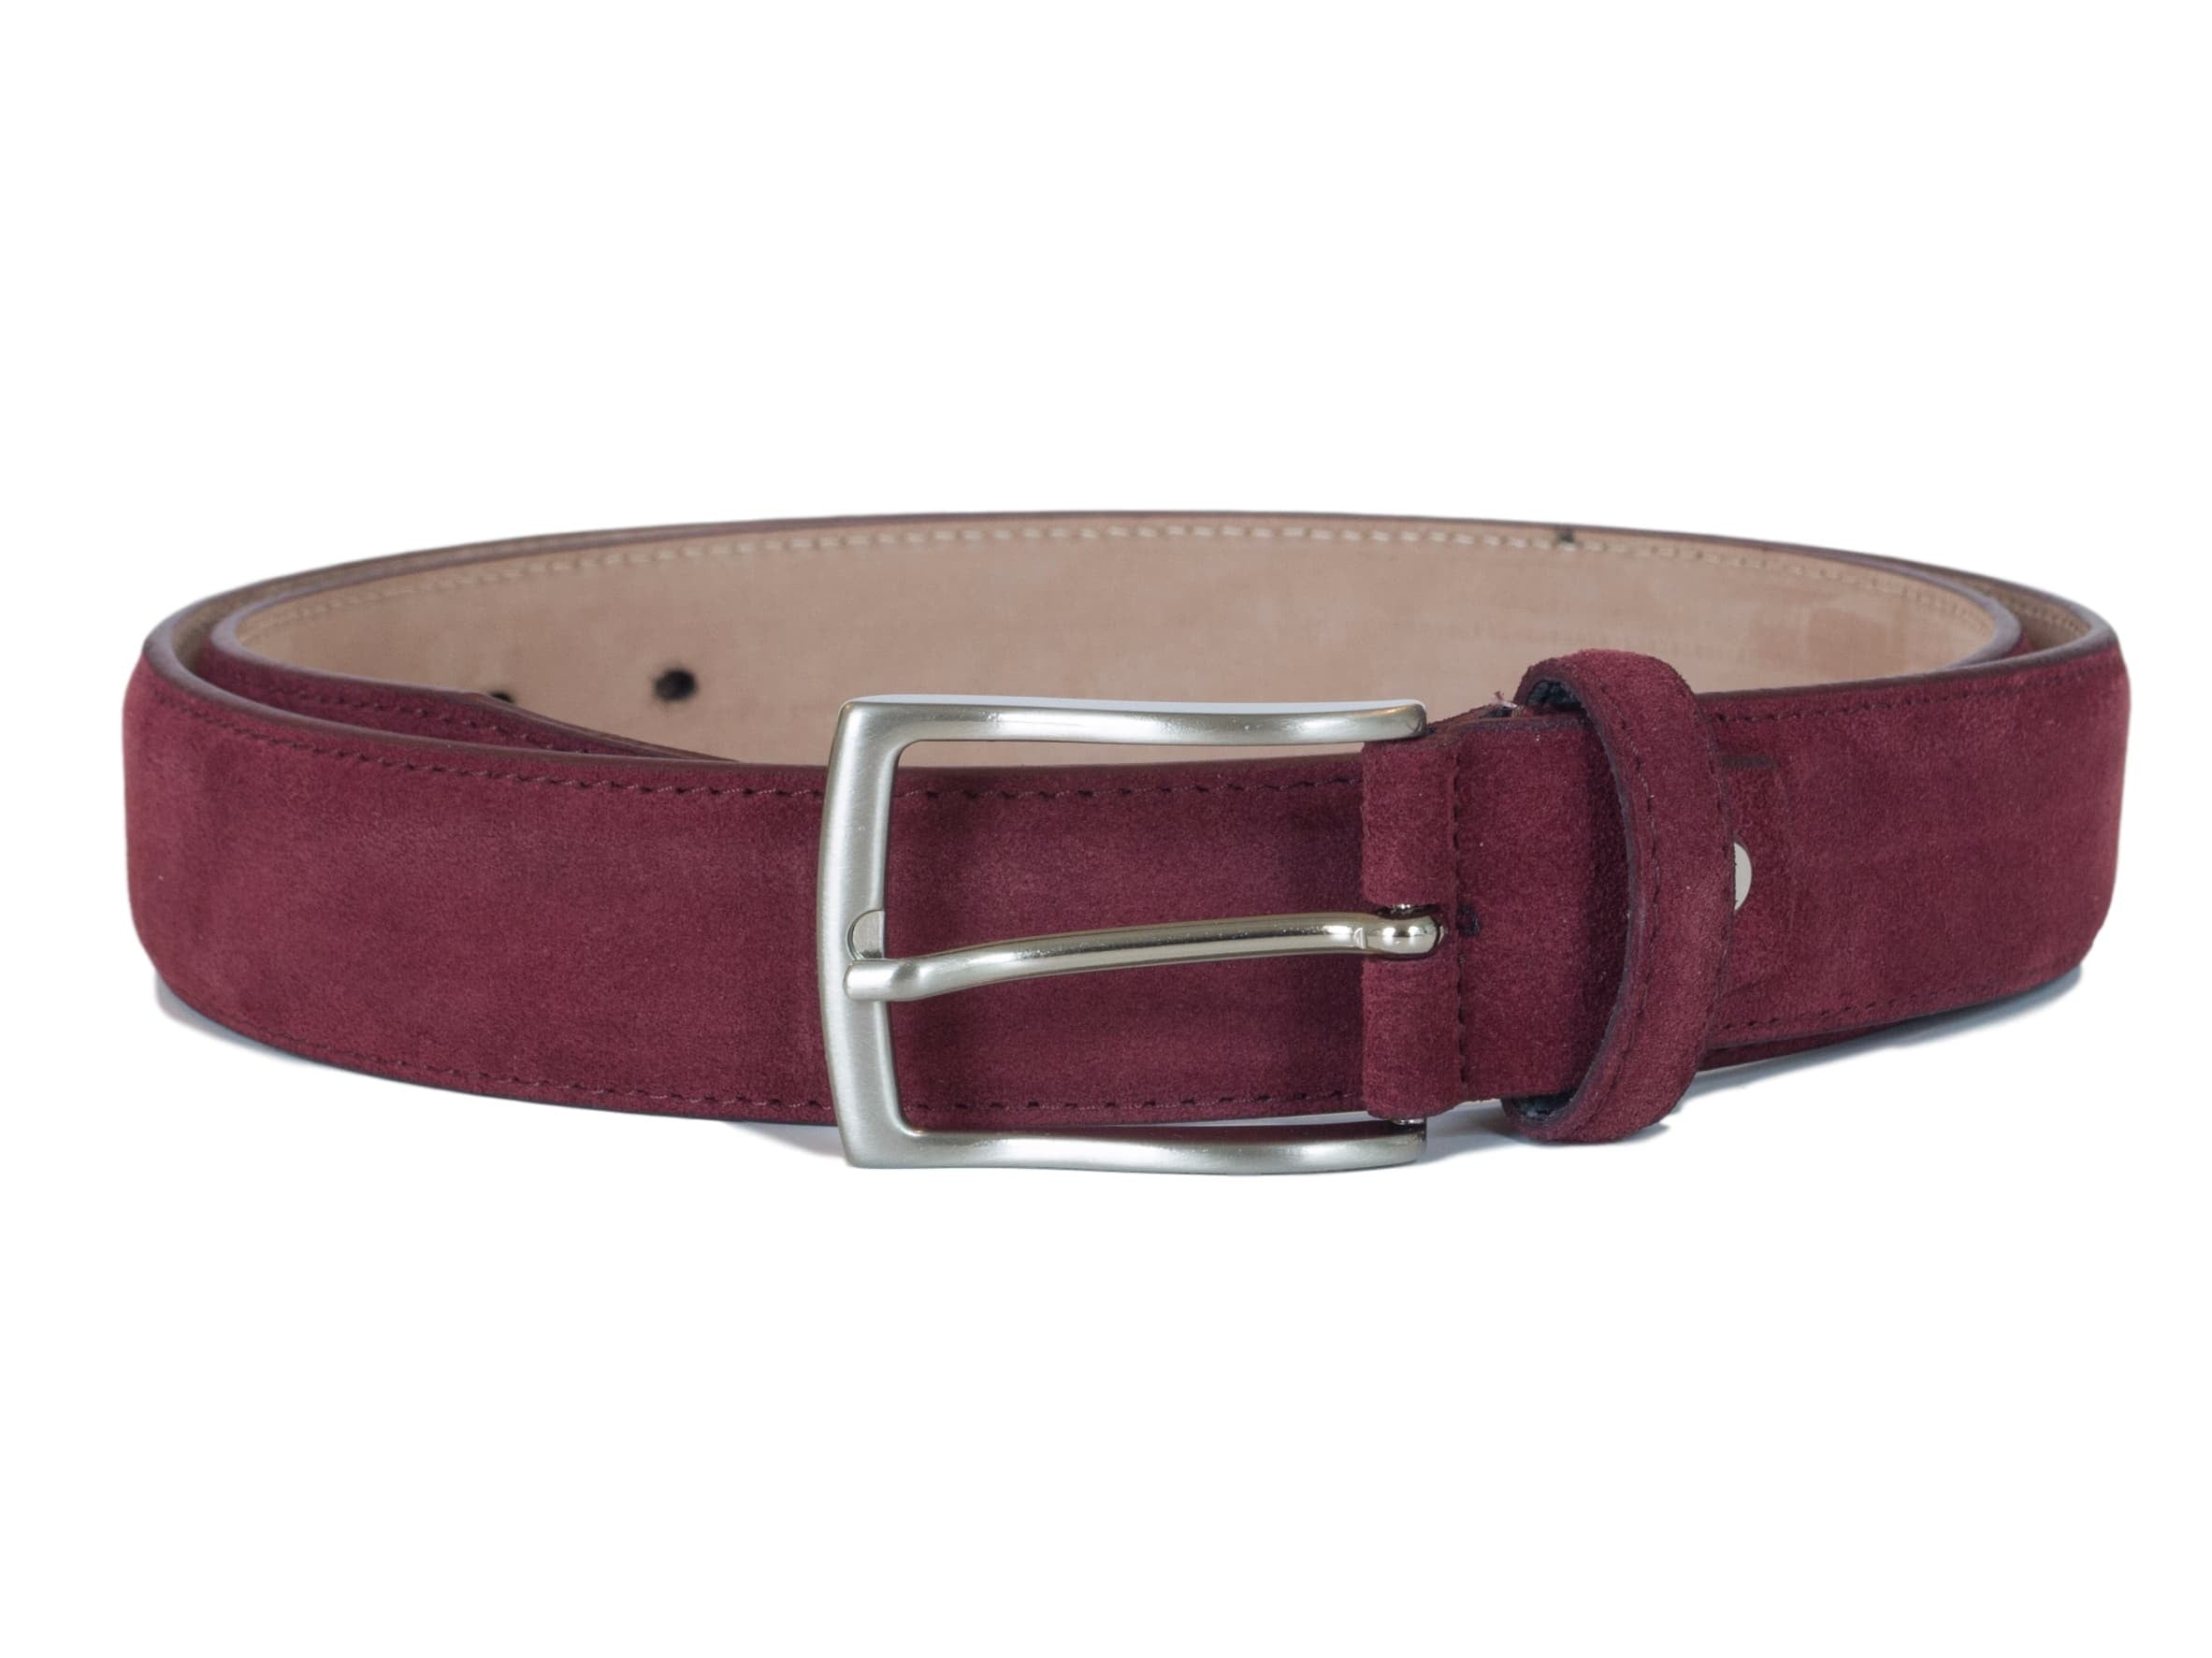 bordeaux wine red leather belt